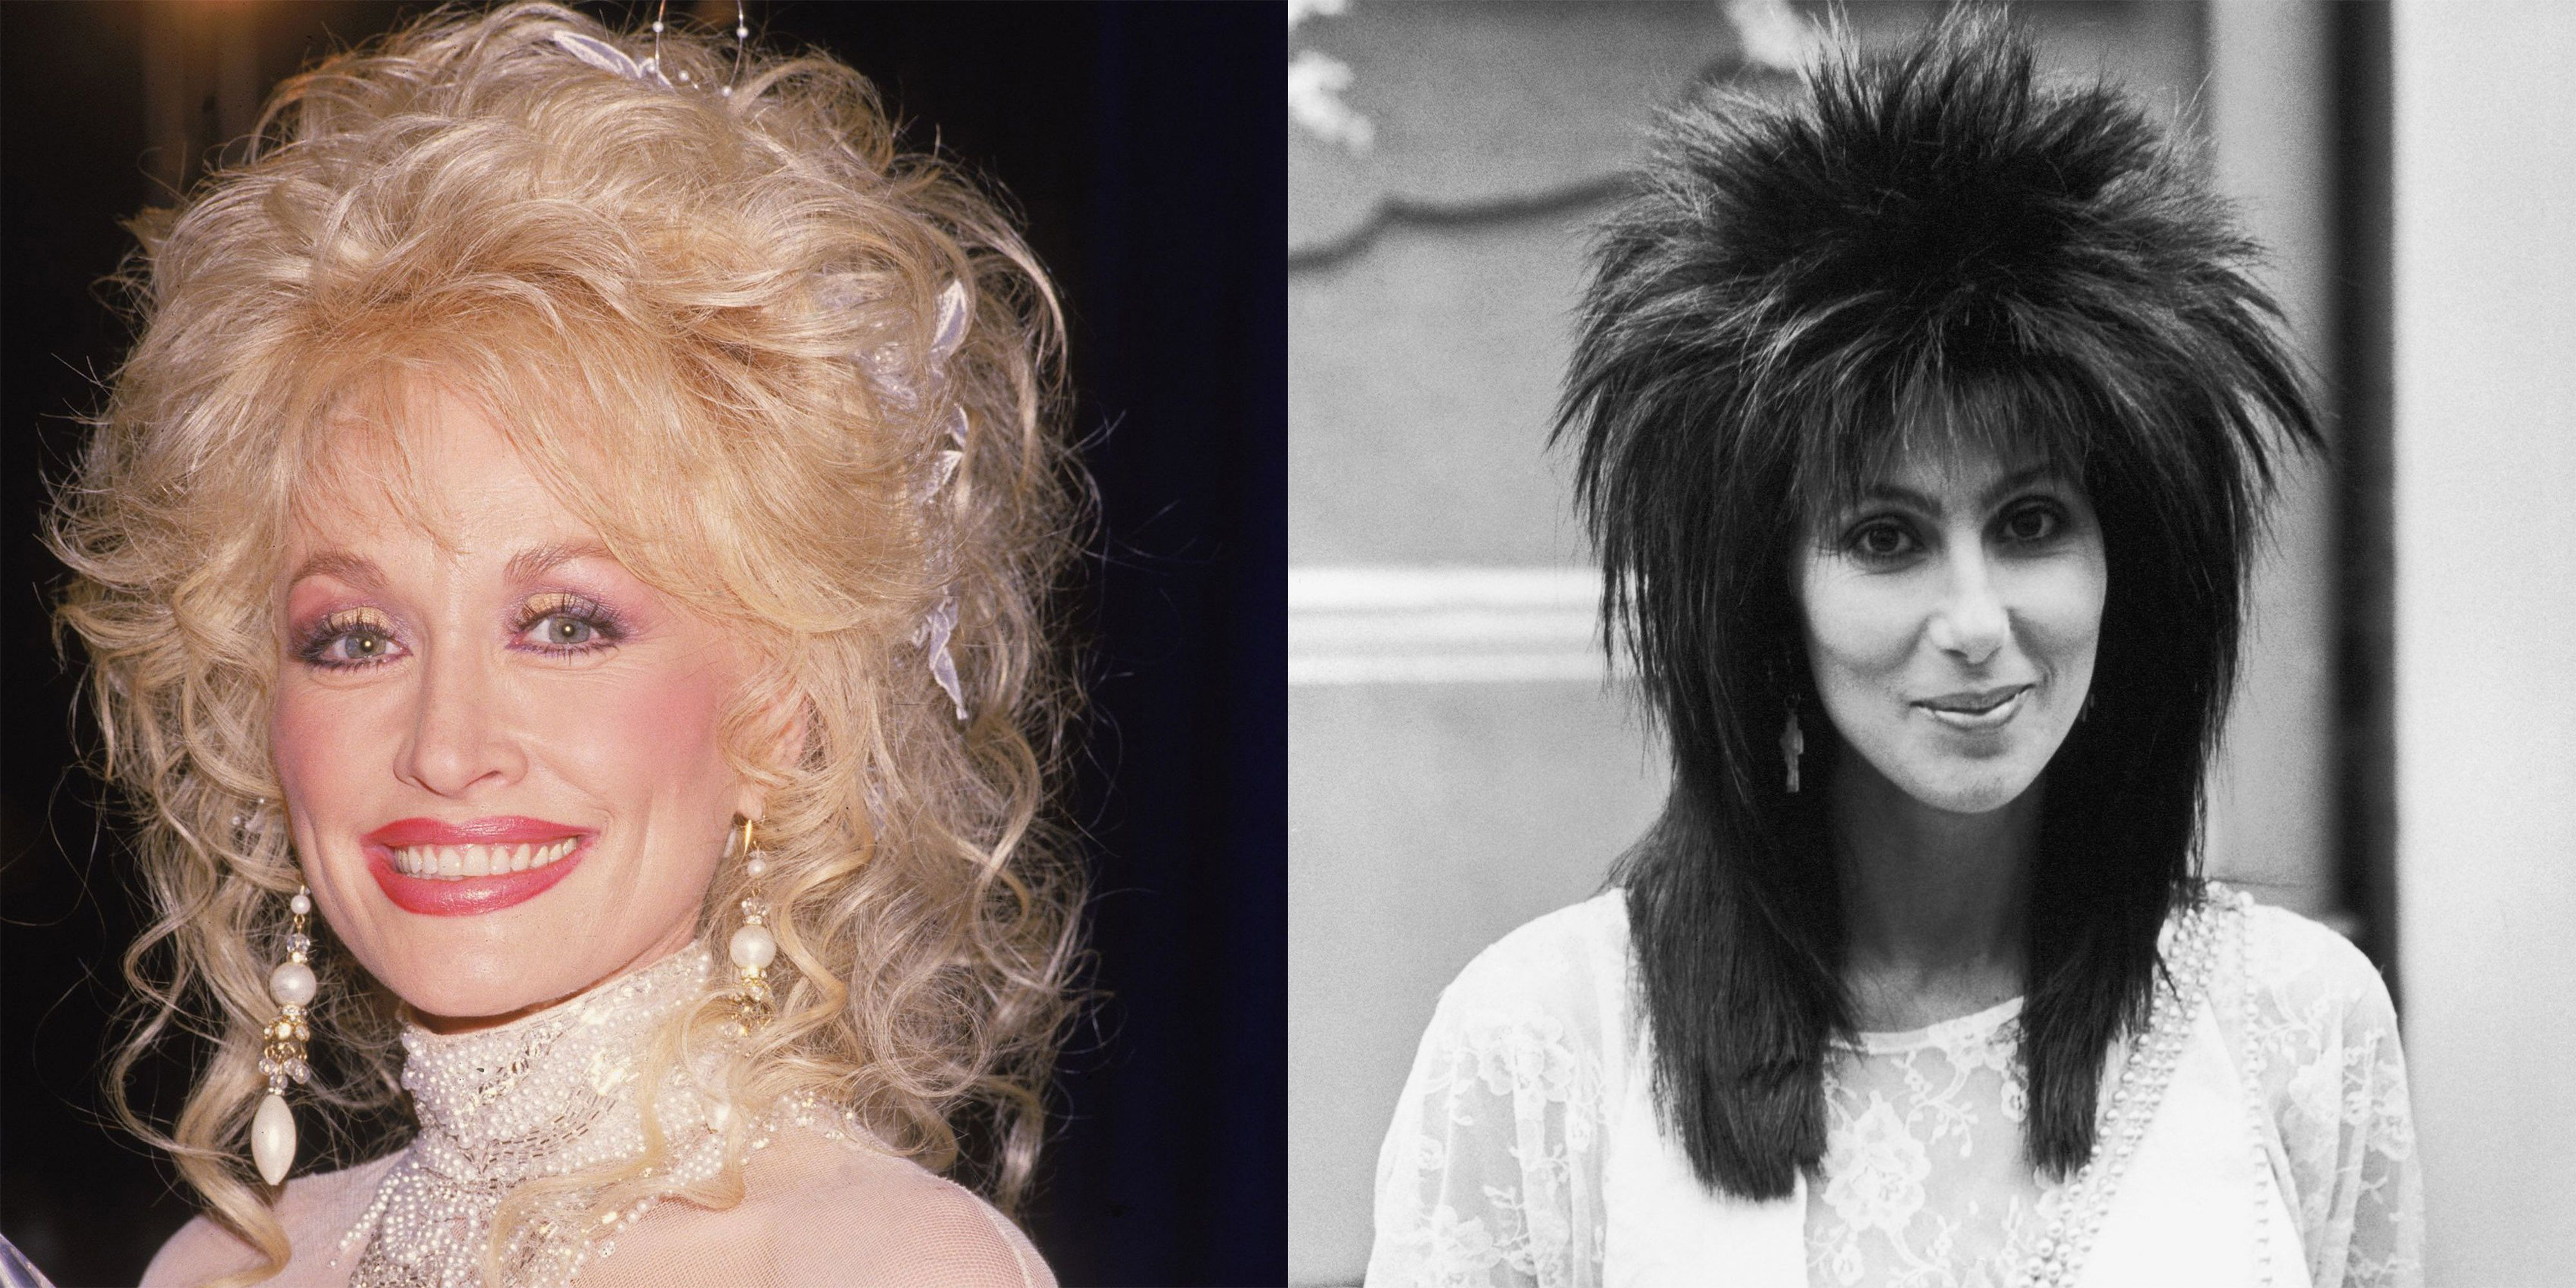 13 Best 80s Hairstyles How To Do The Most Iconic 80s Hairstyles